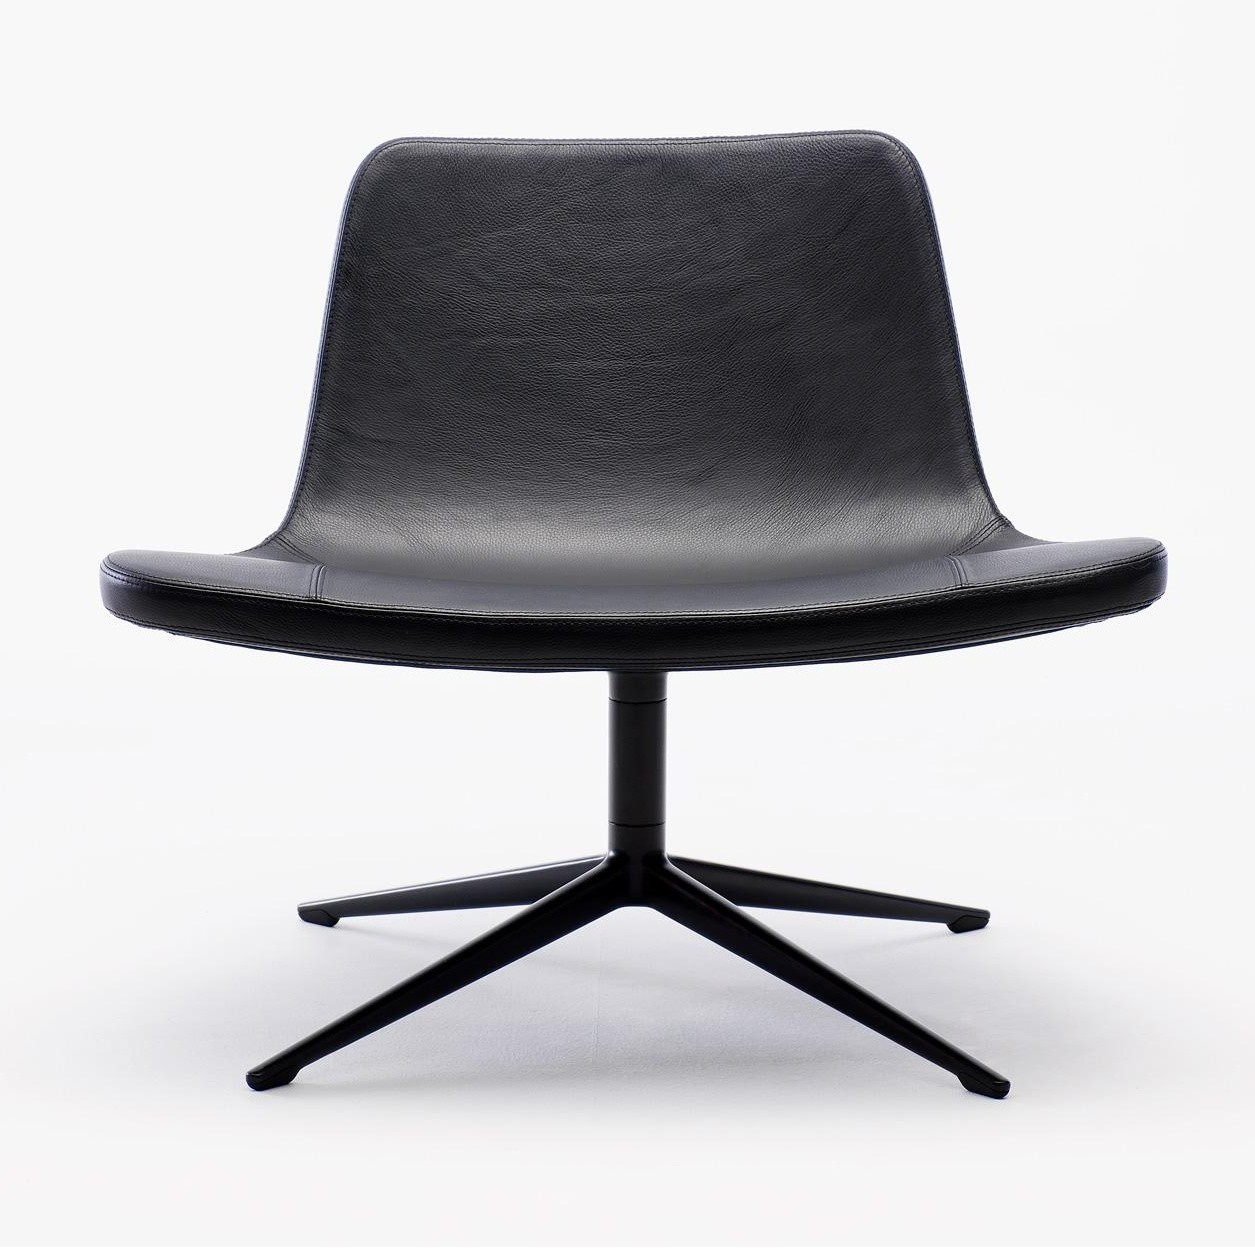 lounge drehsessel free lounge drehsessel with lounge drehsessel retro lounge drehsessel